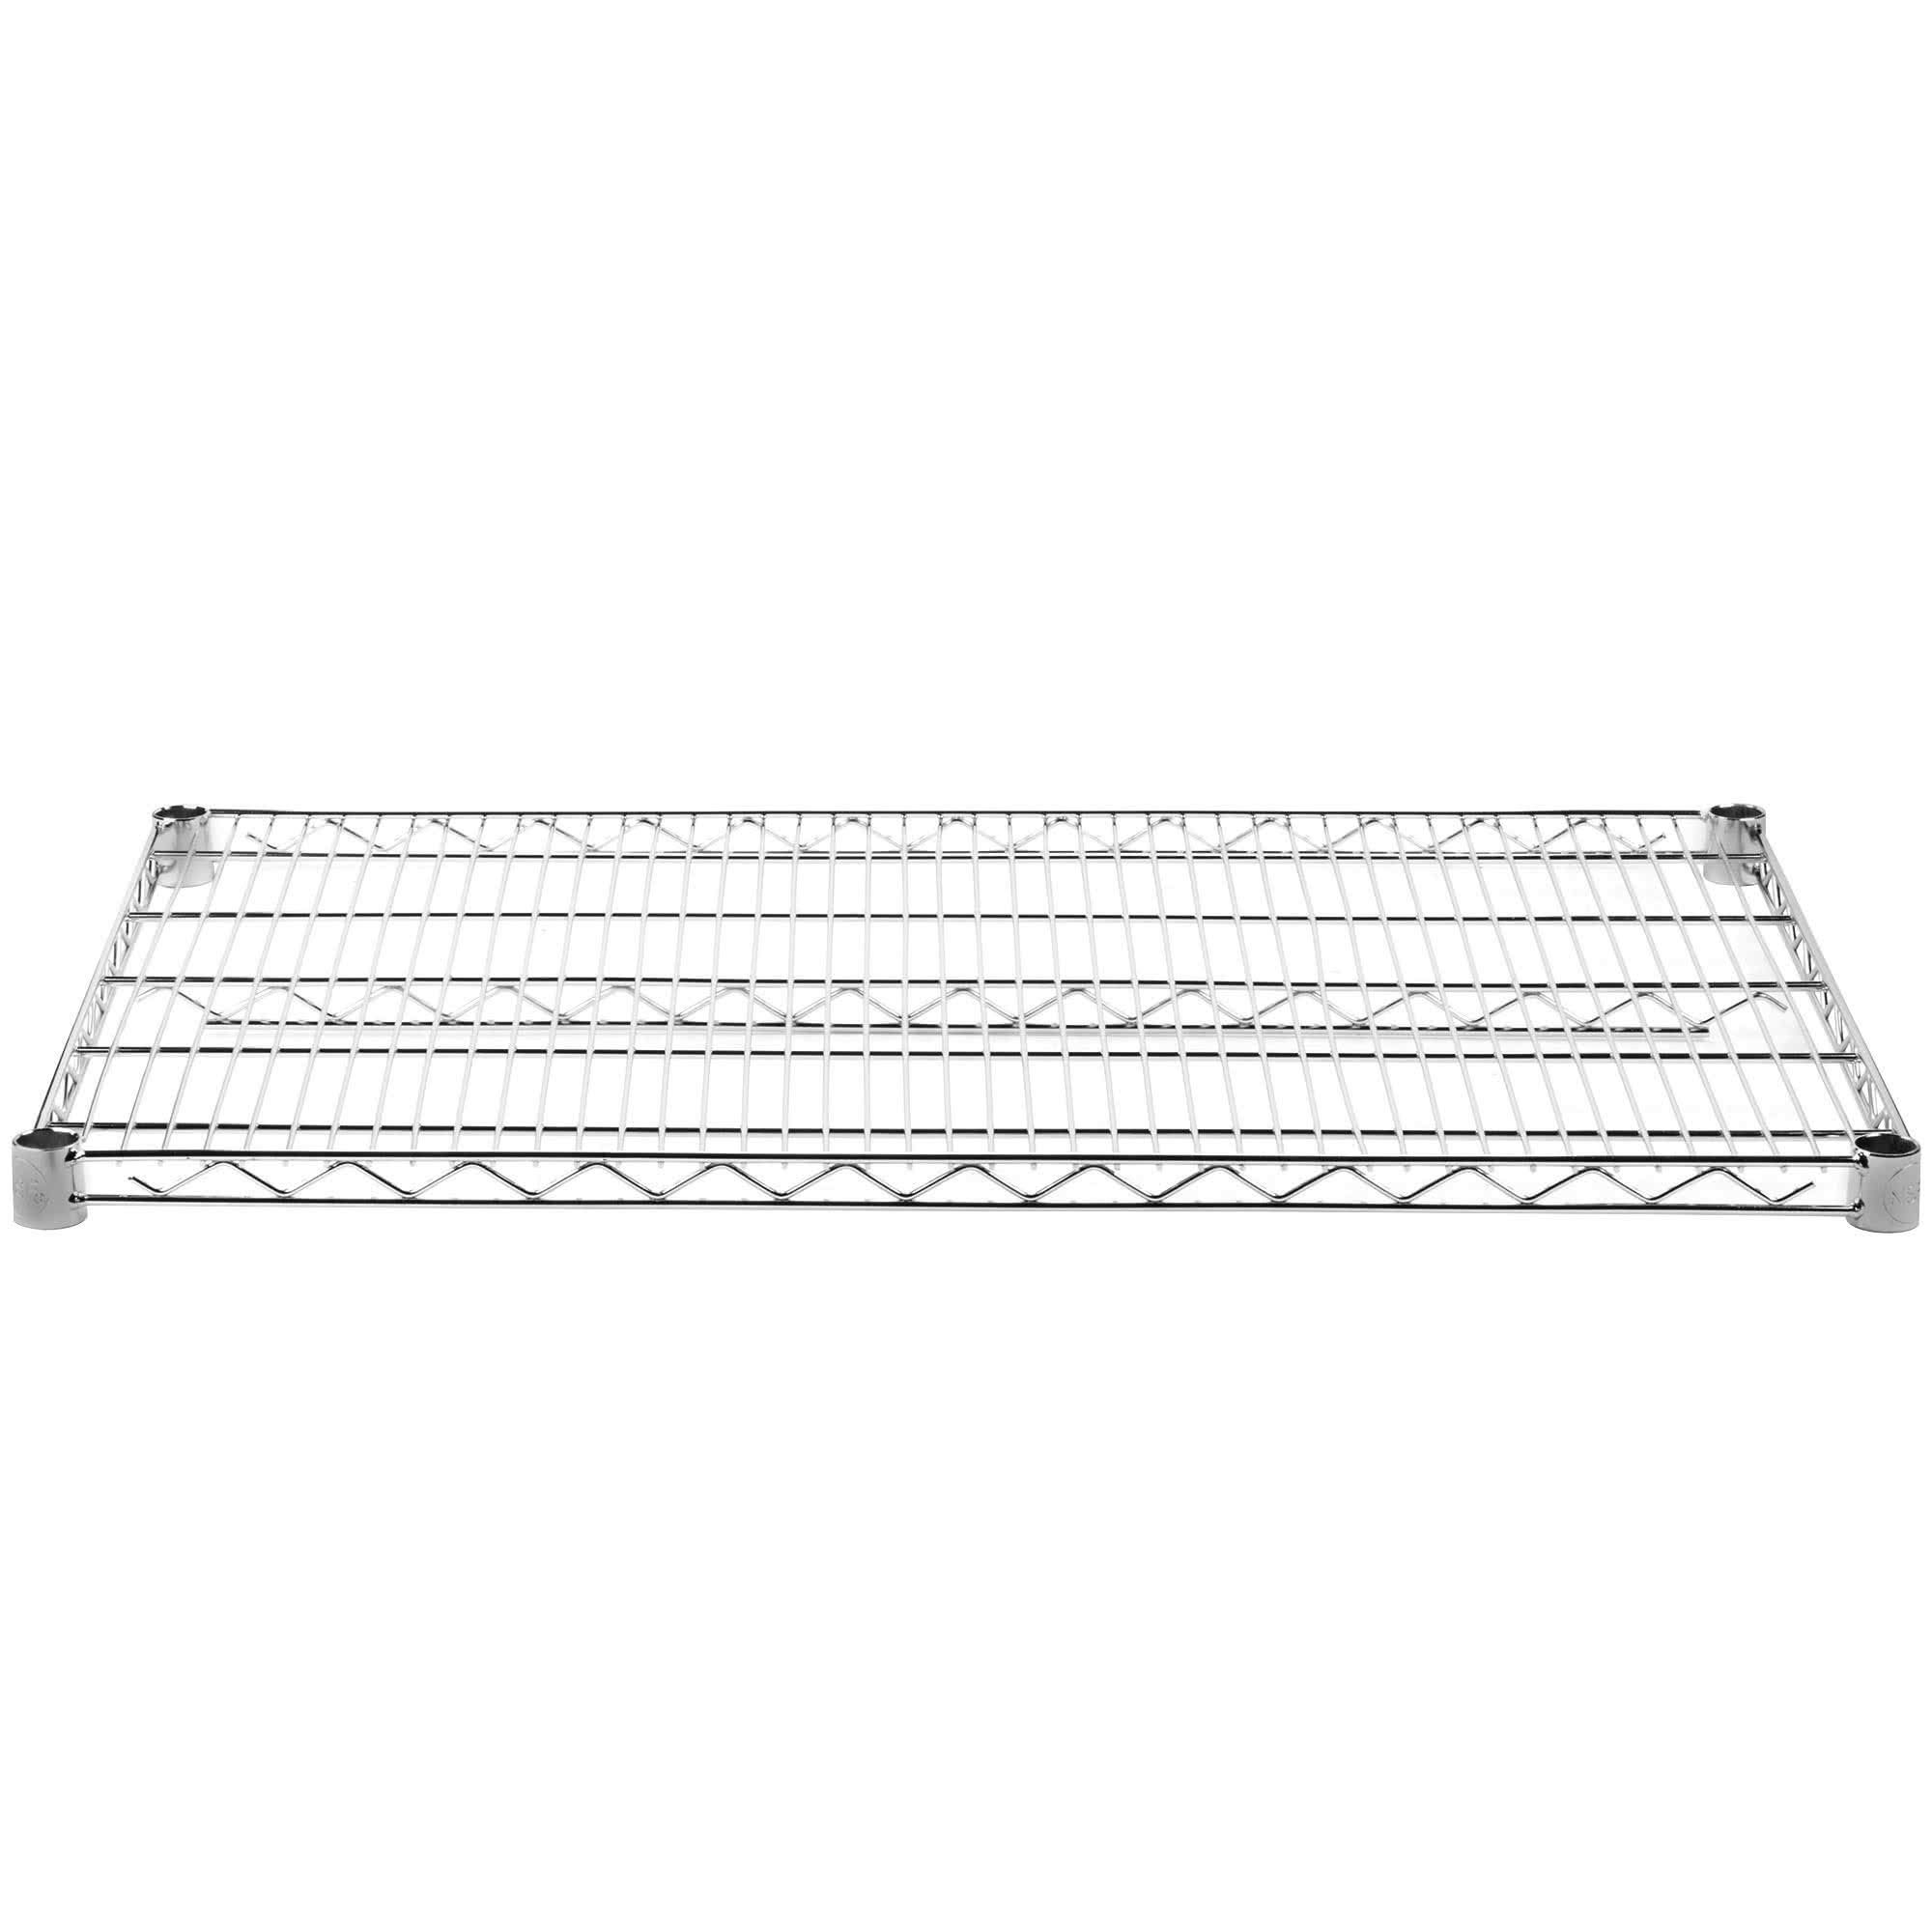 Commercial Chrome Wire Shelving 24 x 42 - NSF (2 Shelves) by L and J (Image #4)